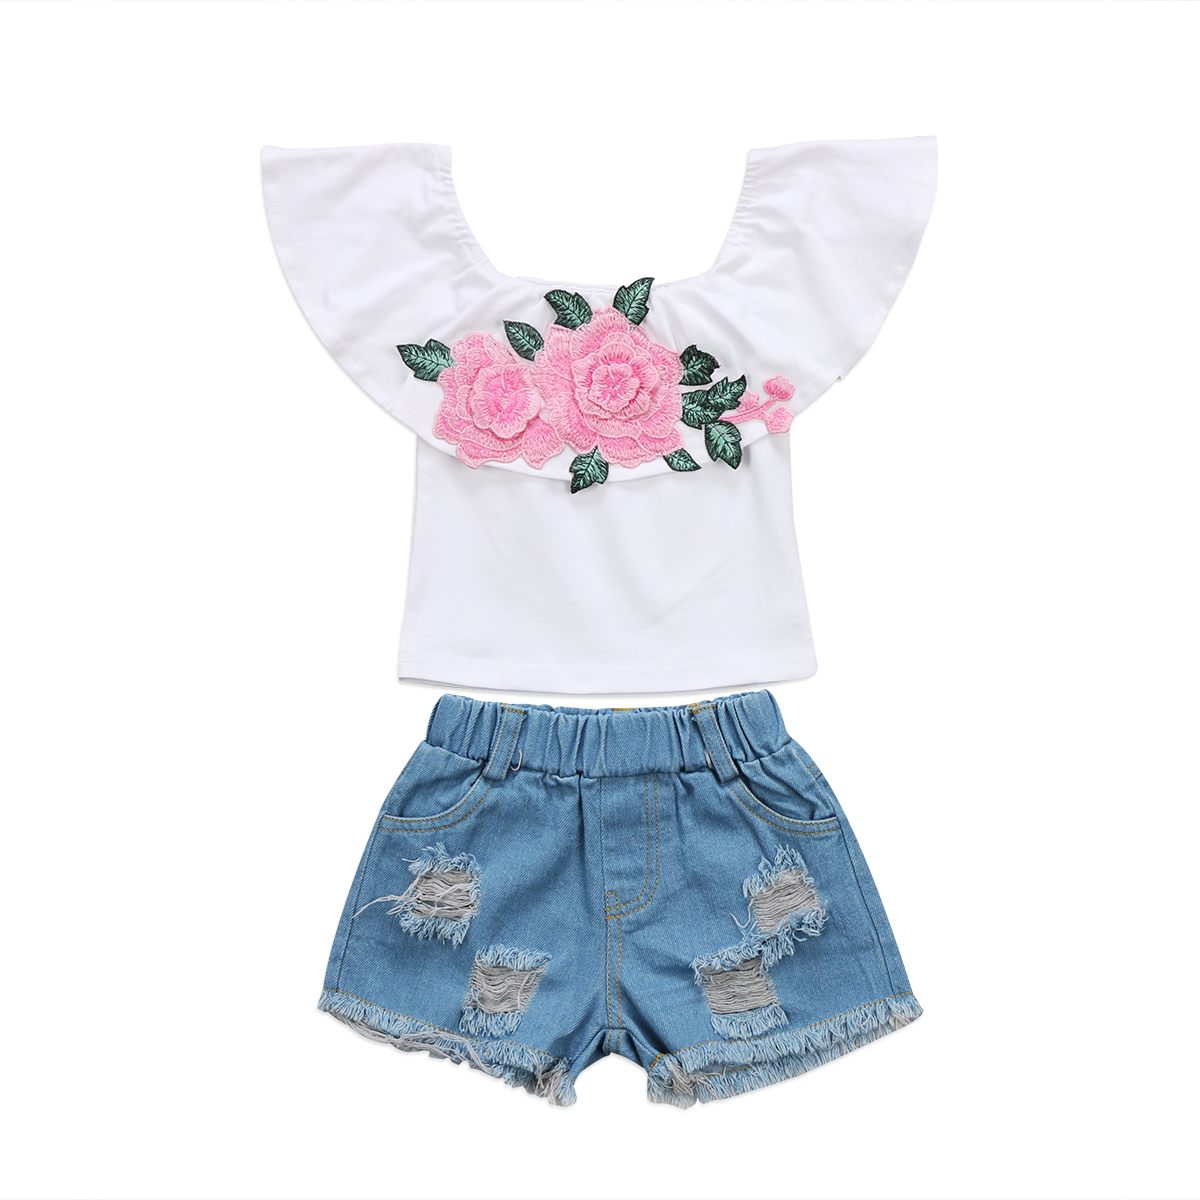 Kids Toddler Baby Girl Outfit Floral T Shirt Tops Denim Shorts Pants Clothes Set